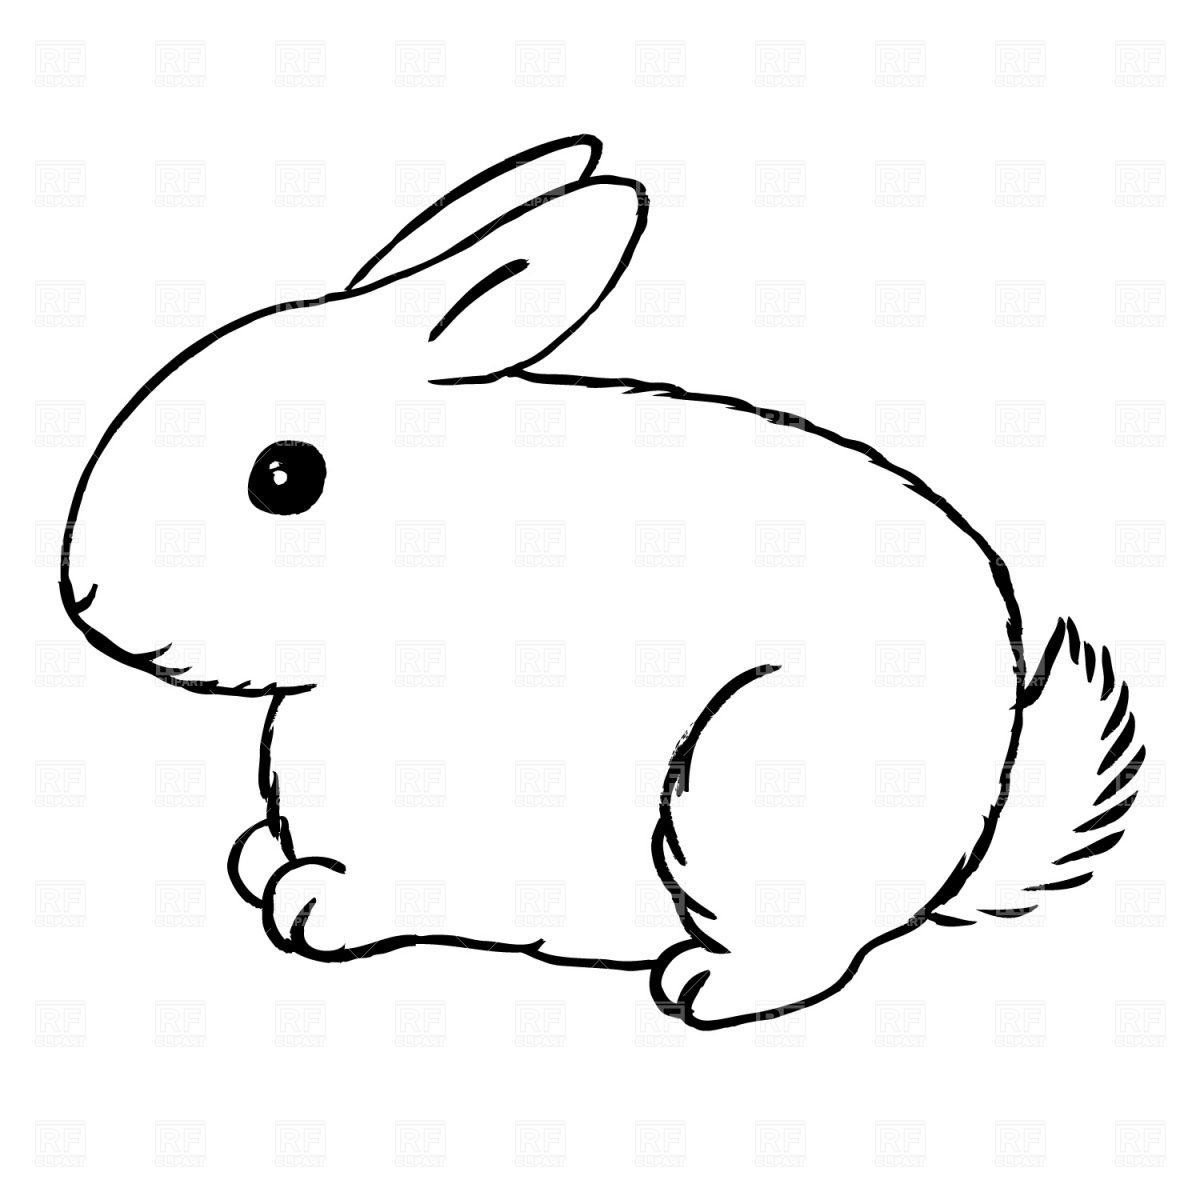 hight resolution of drawings of rabbits and bunnies use these free images for your websites art projects reports and